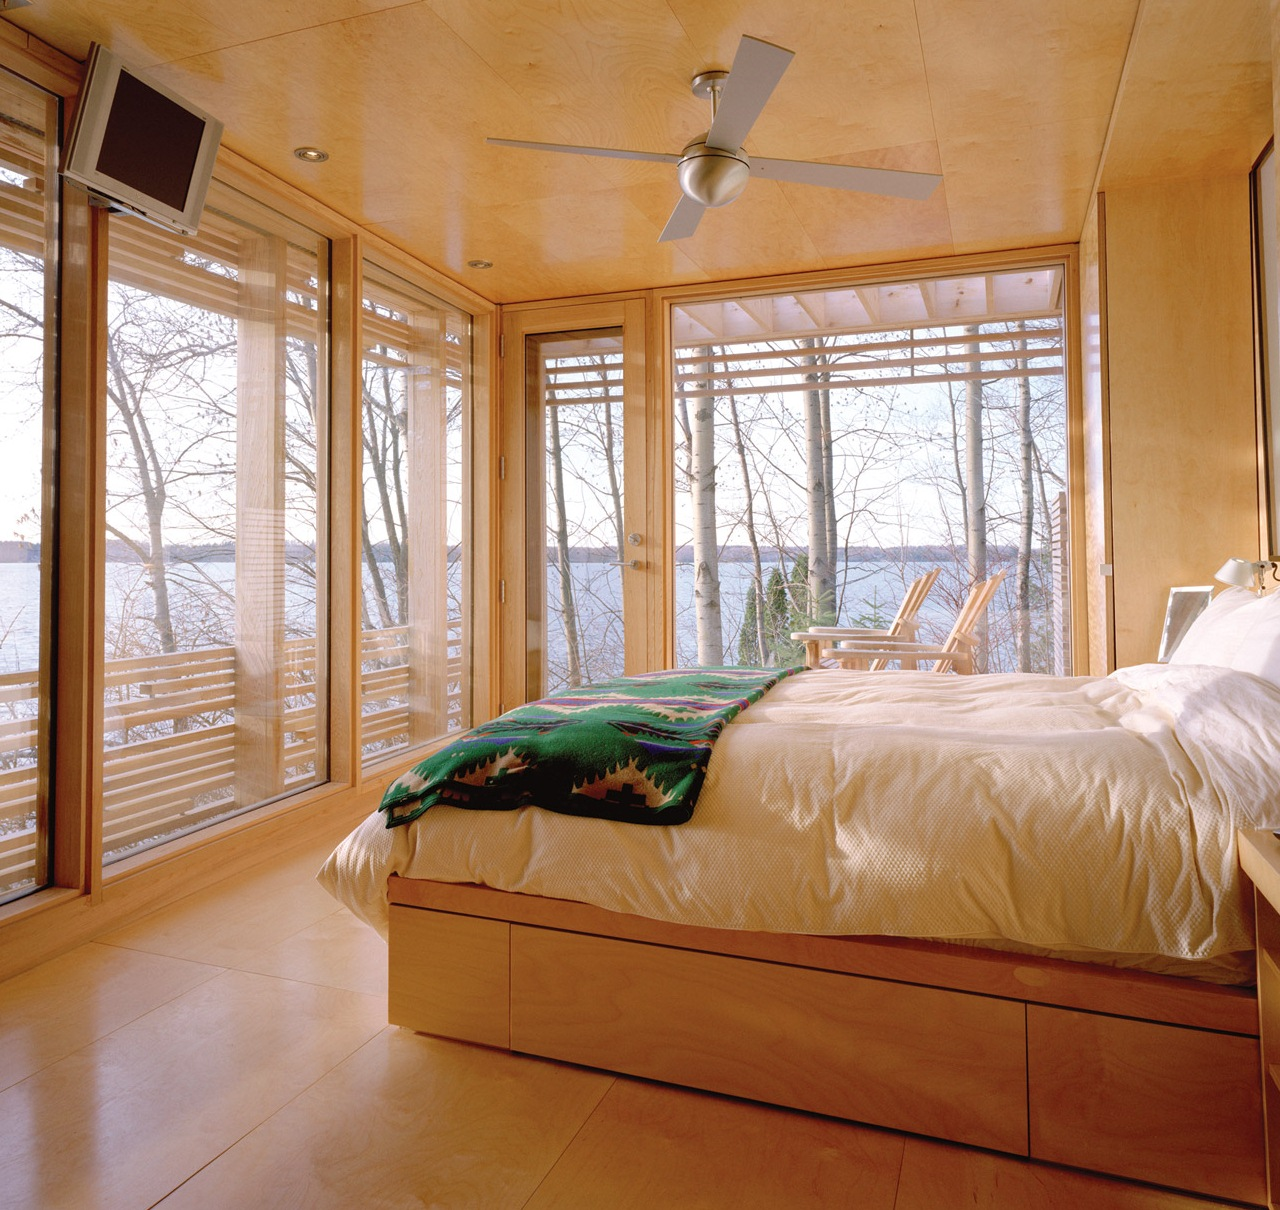 Cosy Bedroom Ideas For A Restful Retreat: Modern Ceiling Fan Dresses Up Cozy Bedroom Retreat